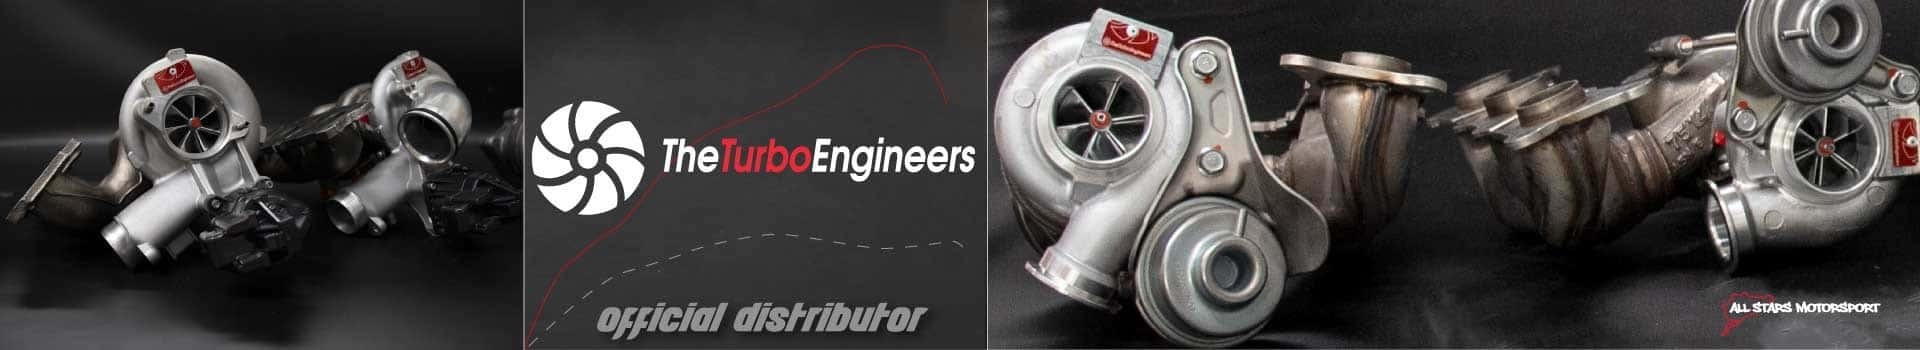 The Turbo Engineers